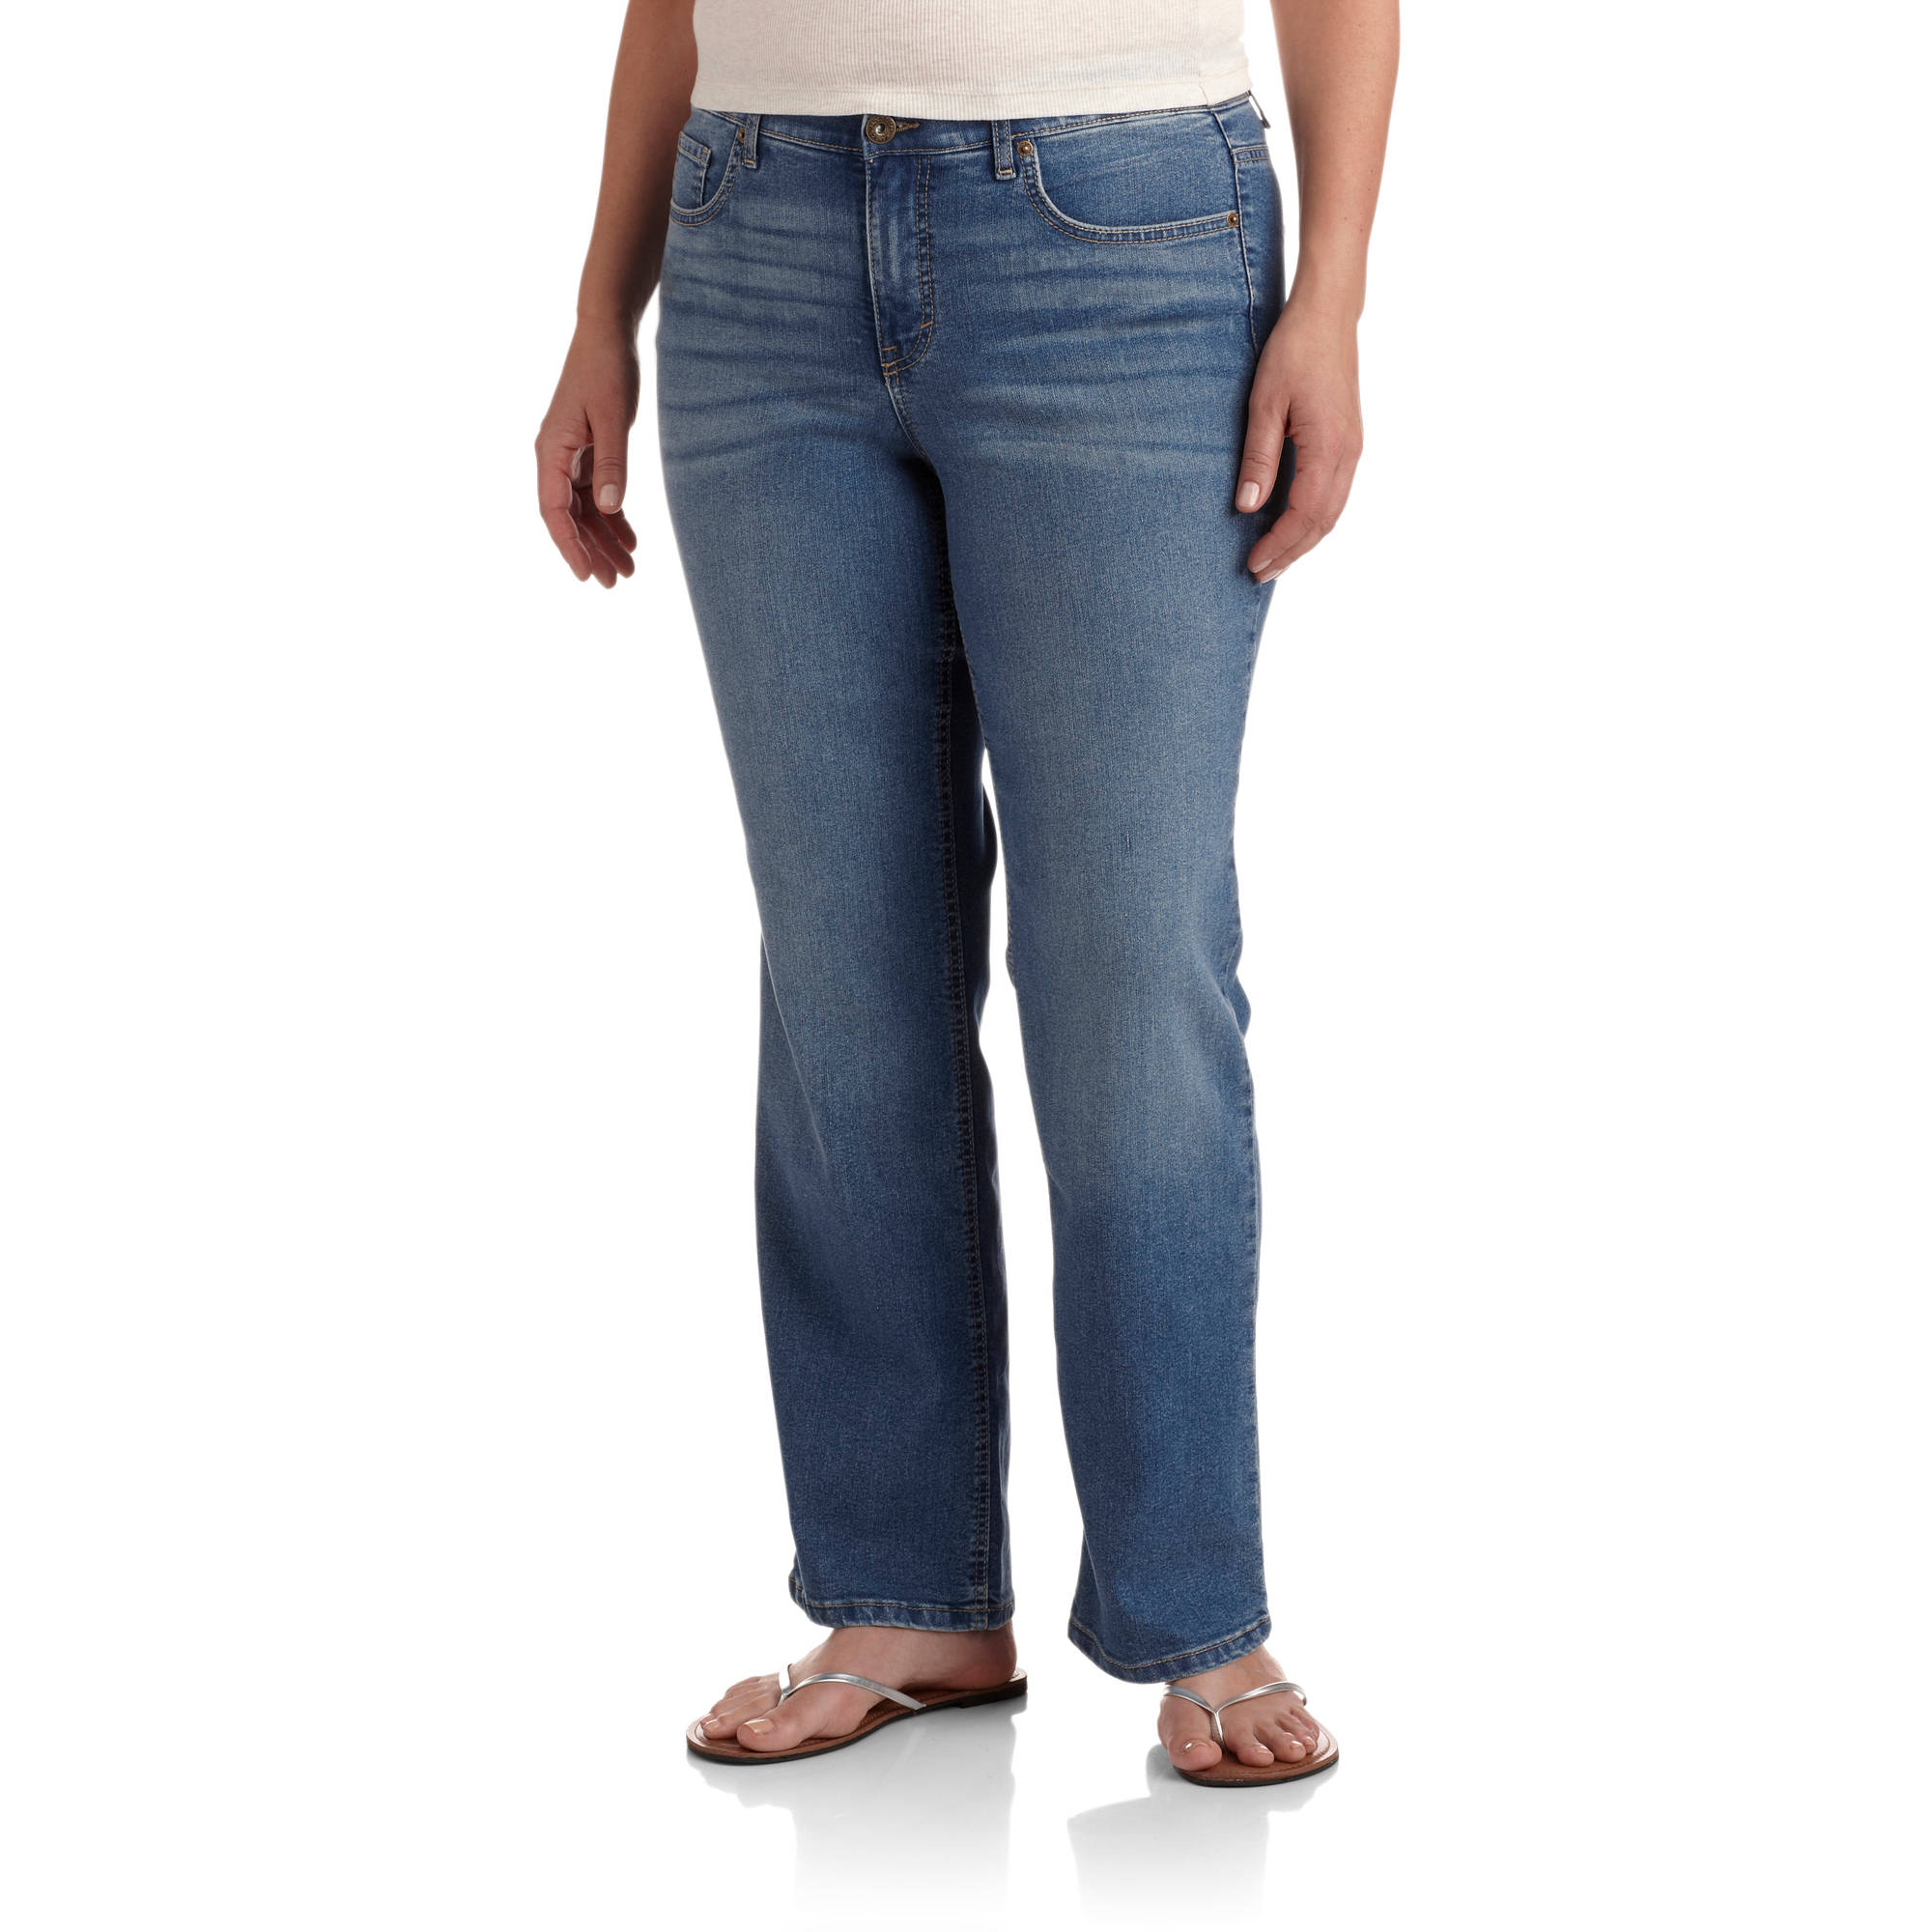 Faded glory mid rise bootcut jeans